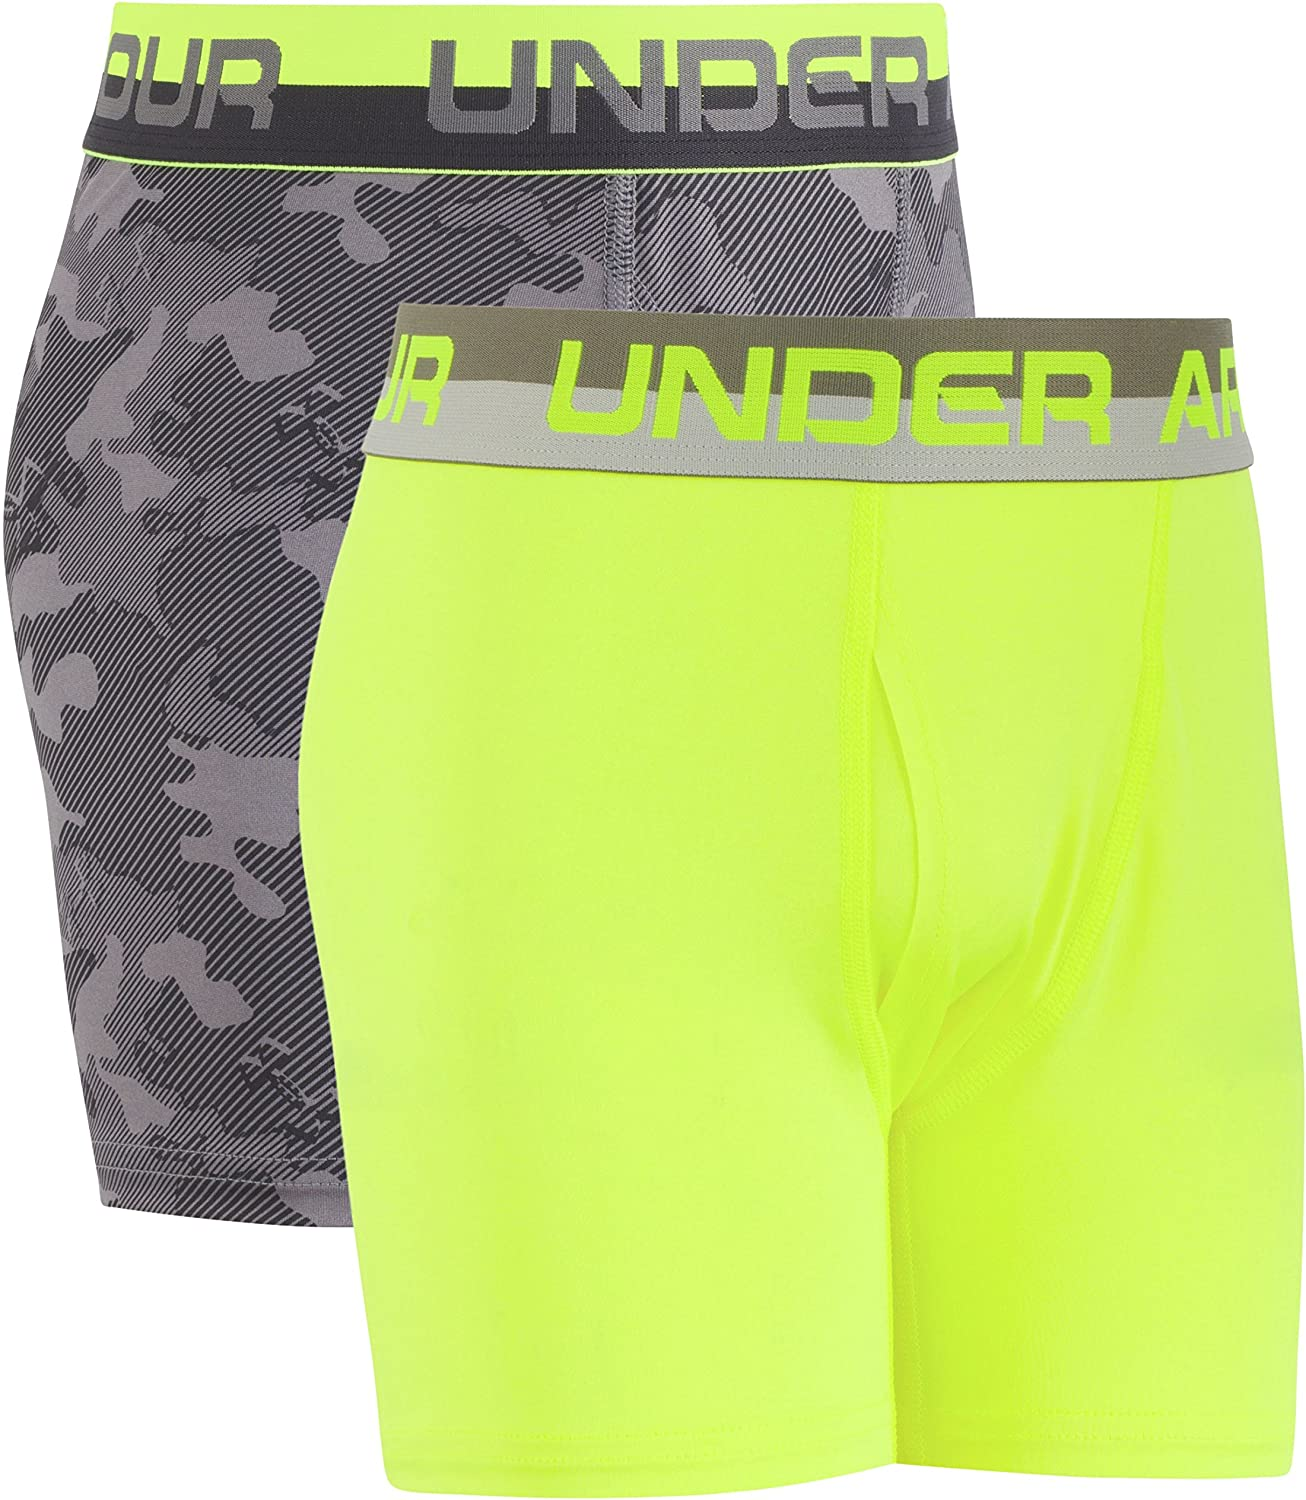 Under Armour Boys' Performance Boxer Briefs